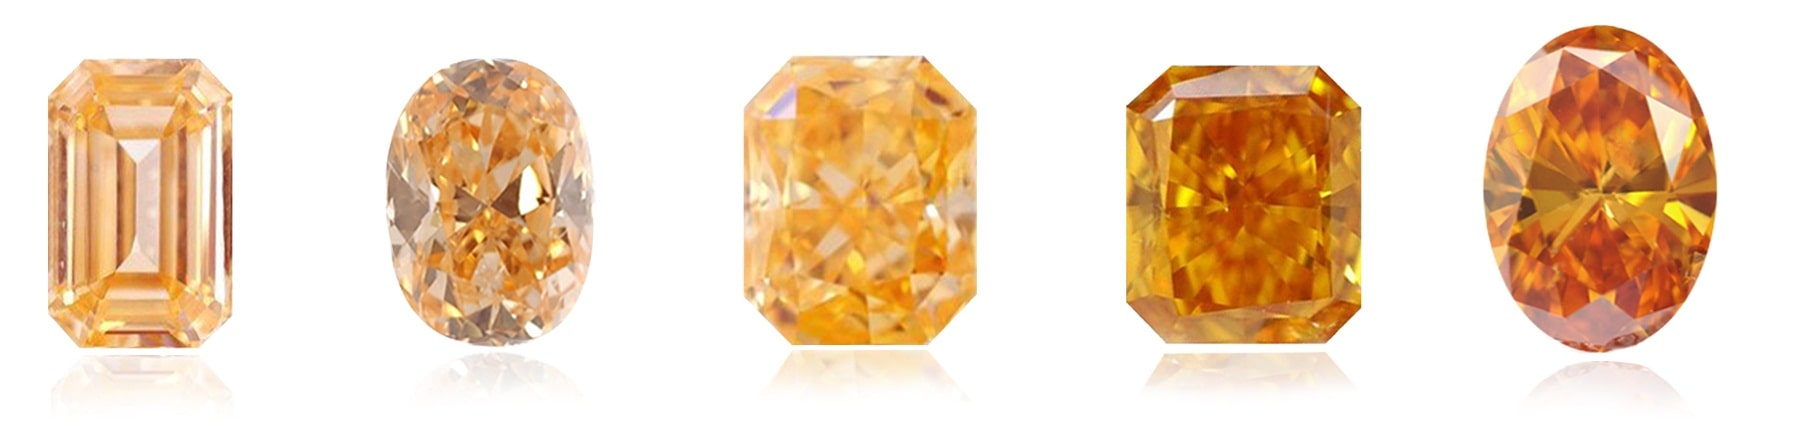 Orange Diamond Color Scale